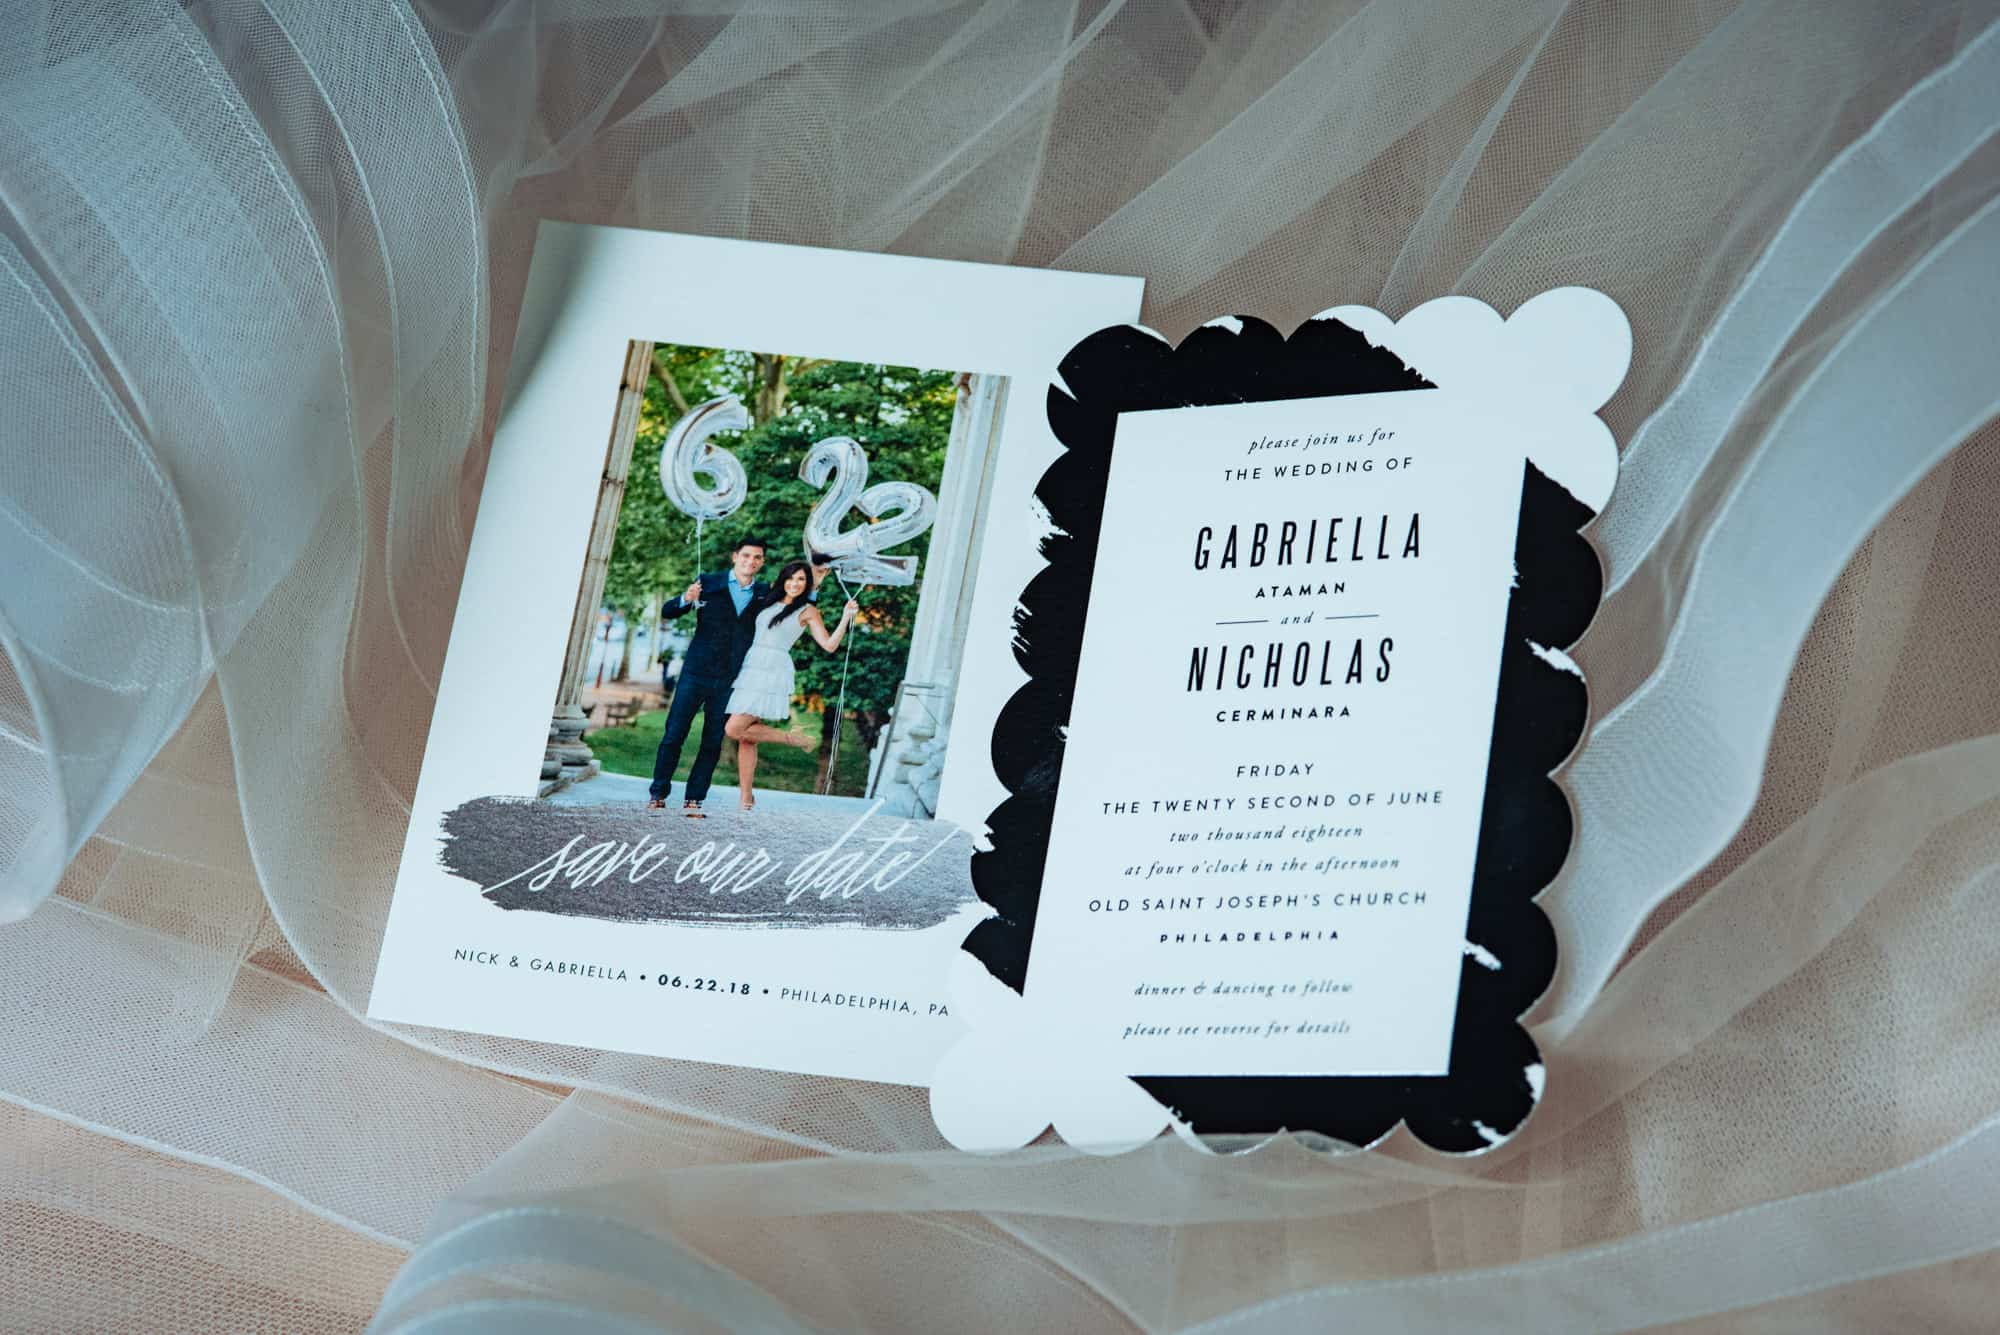 Gabriella+Nick-Tendenza Wedding-2